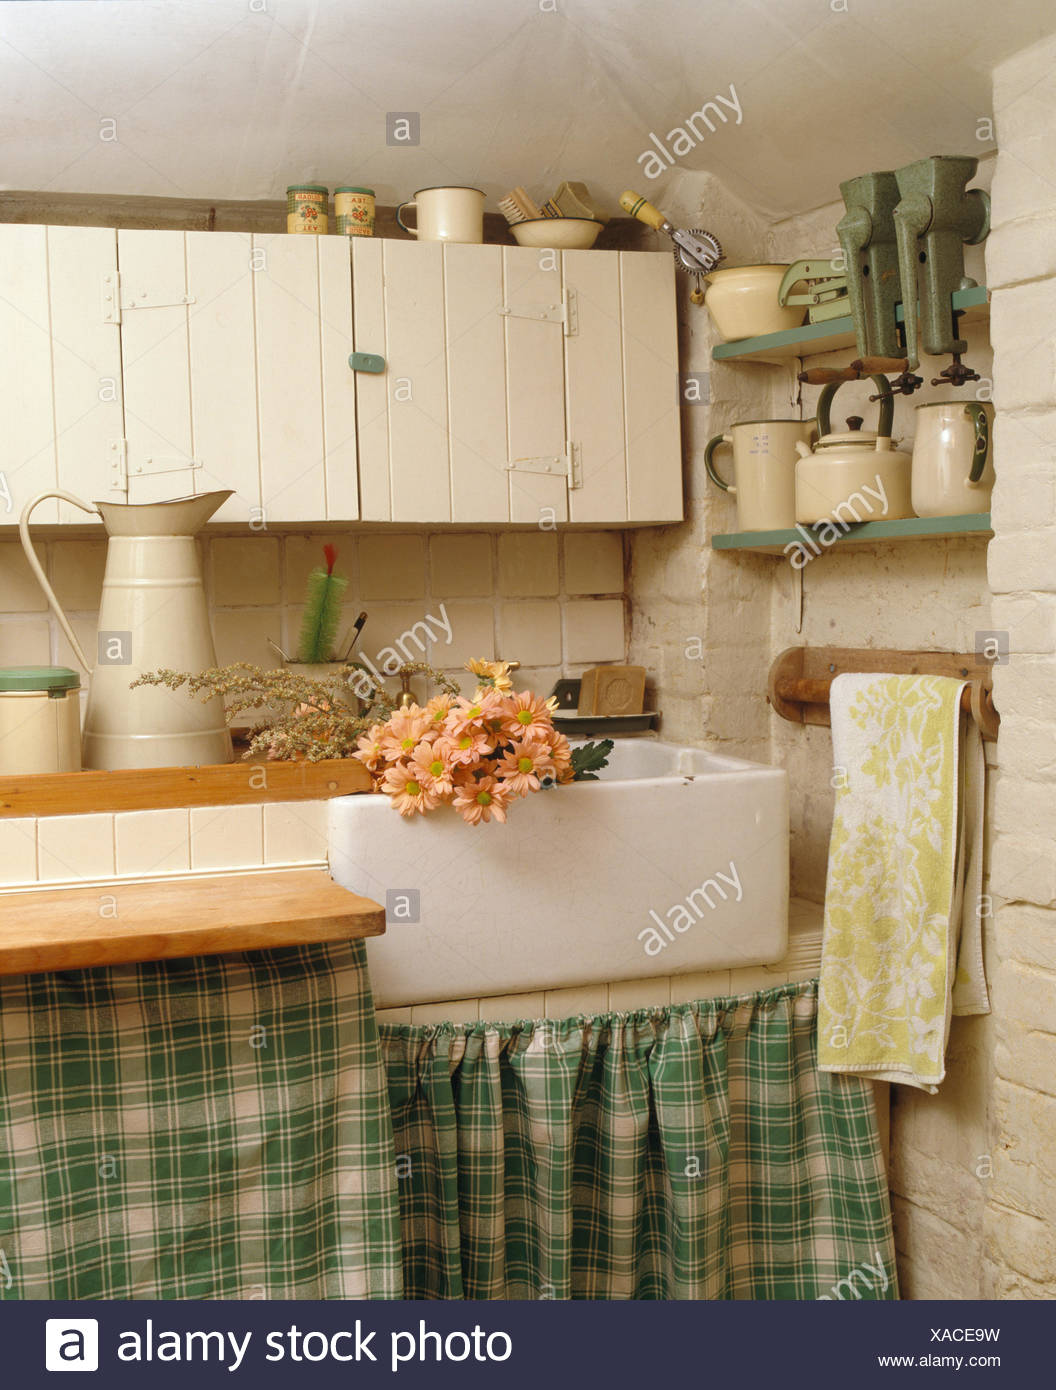 Peach Pink Daisies In Belfast Sink In Fitted Unit With Green Checked  Curtains In Economy Style Cottage Kitchen